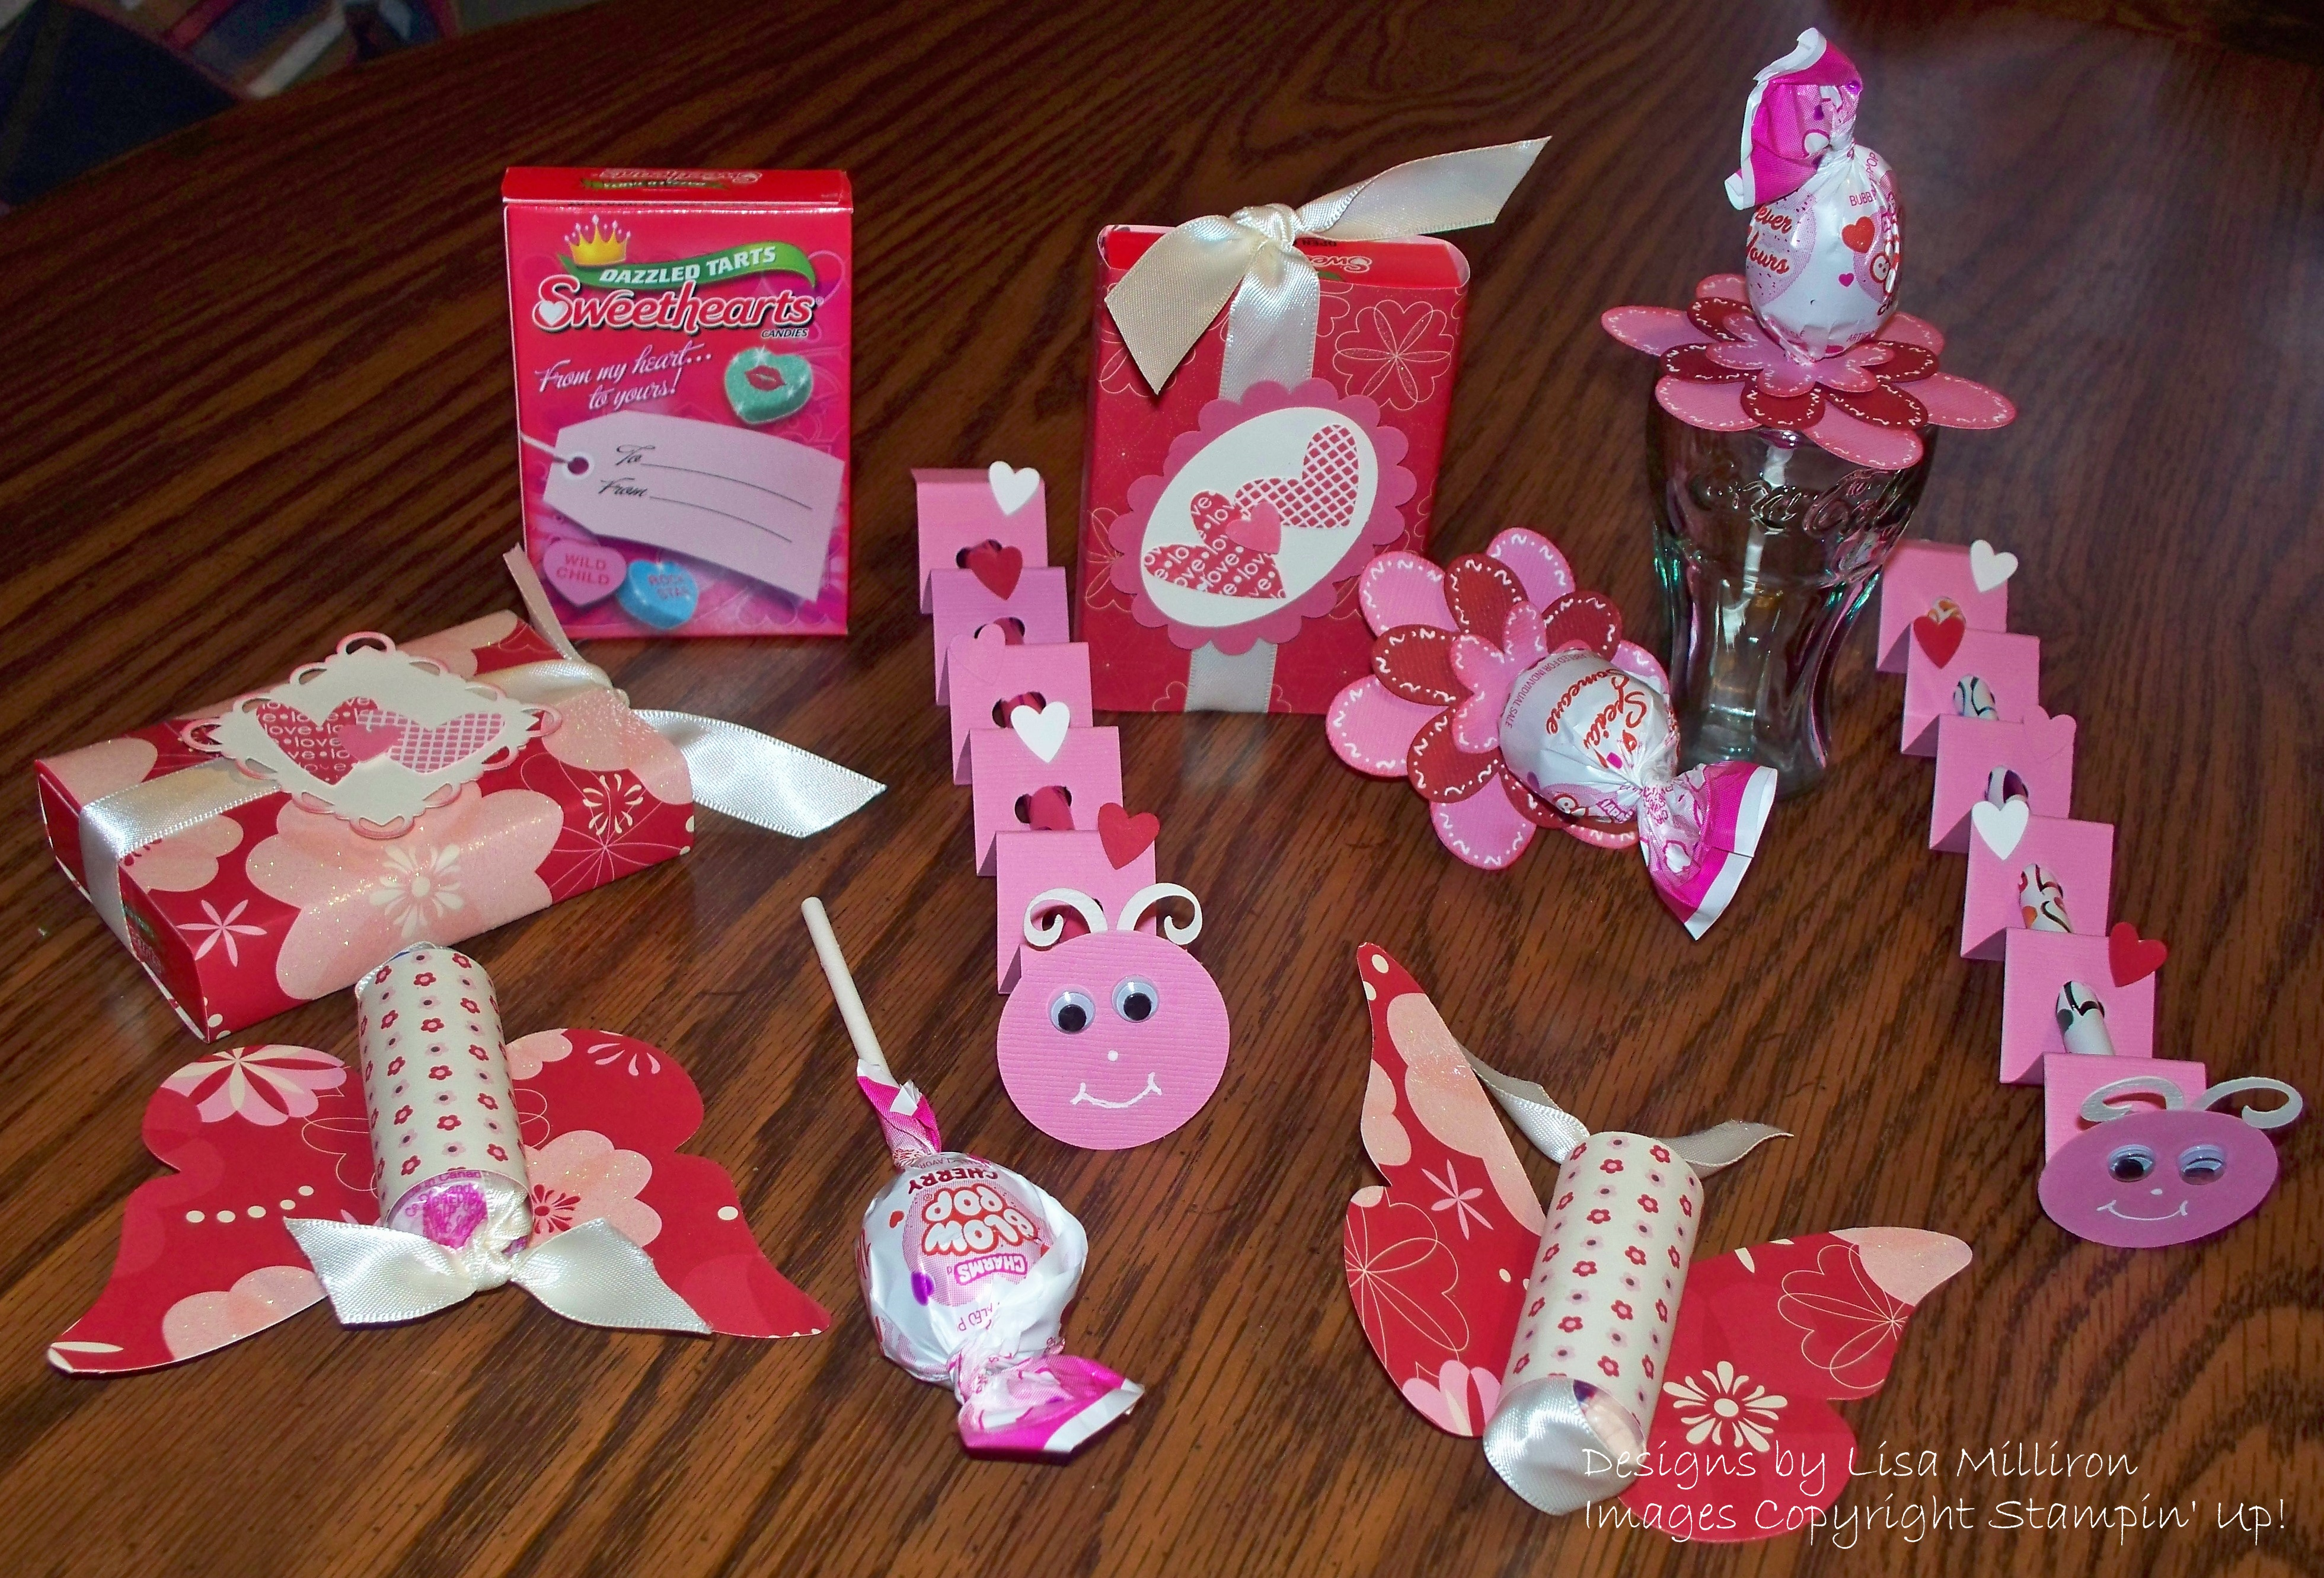 ... The Students At Clarion Limestone School Next Week. I Canu0027t Wait To  Help The Kids Make There Own One Of A Kind Valentines For Their Friends And  Family!